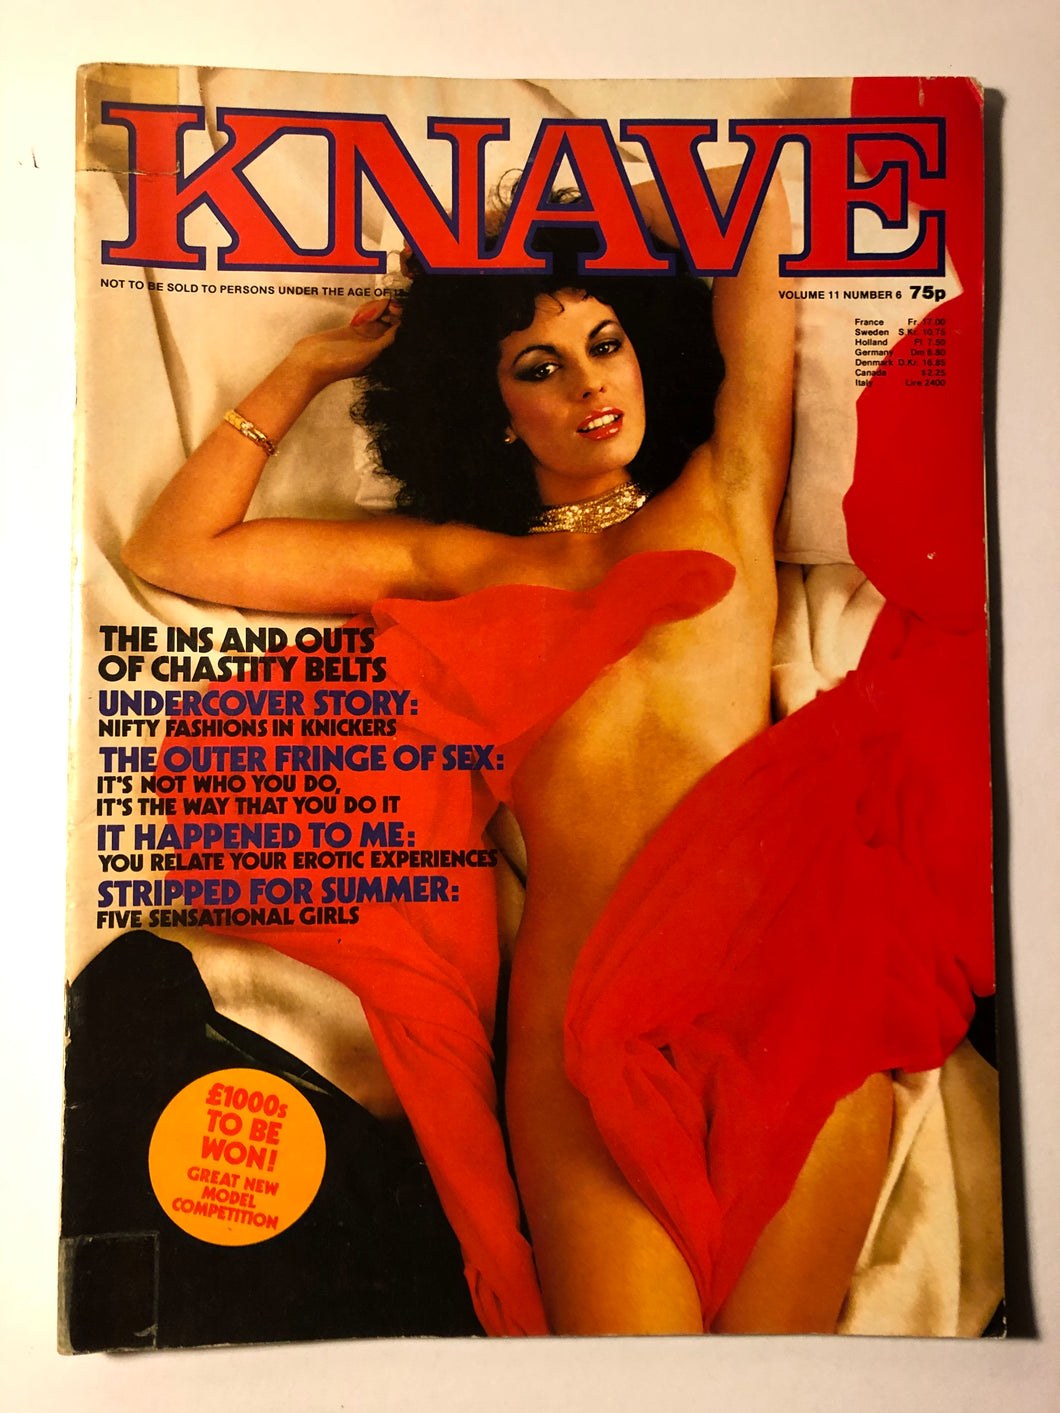 Knave Vol 11 No 6